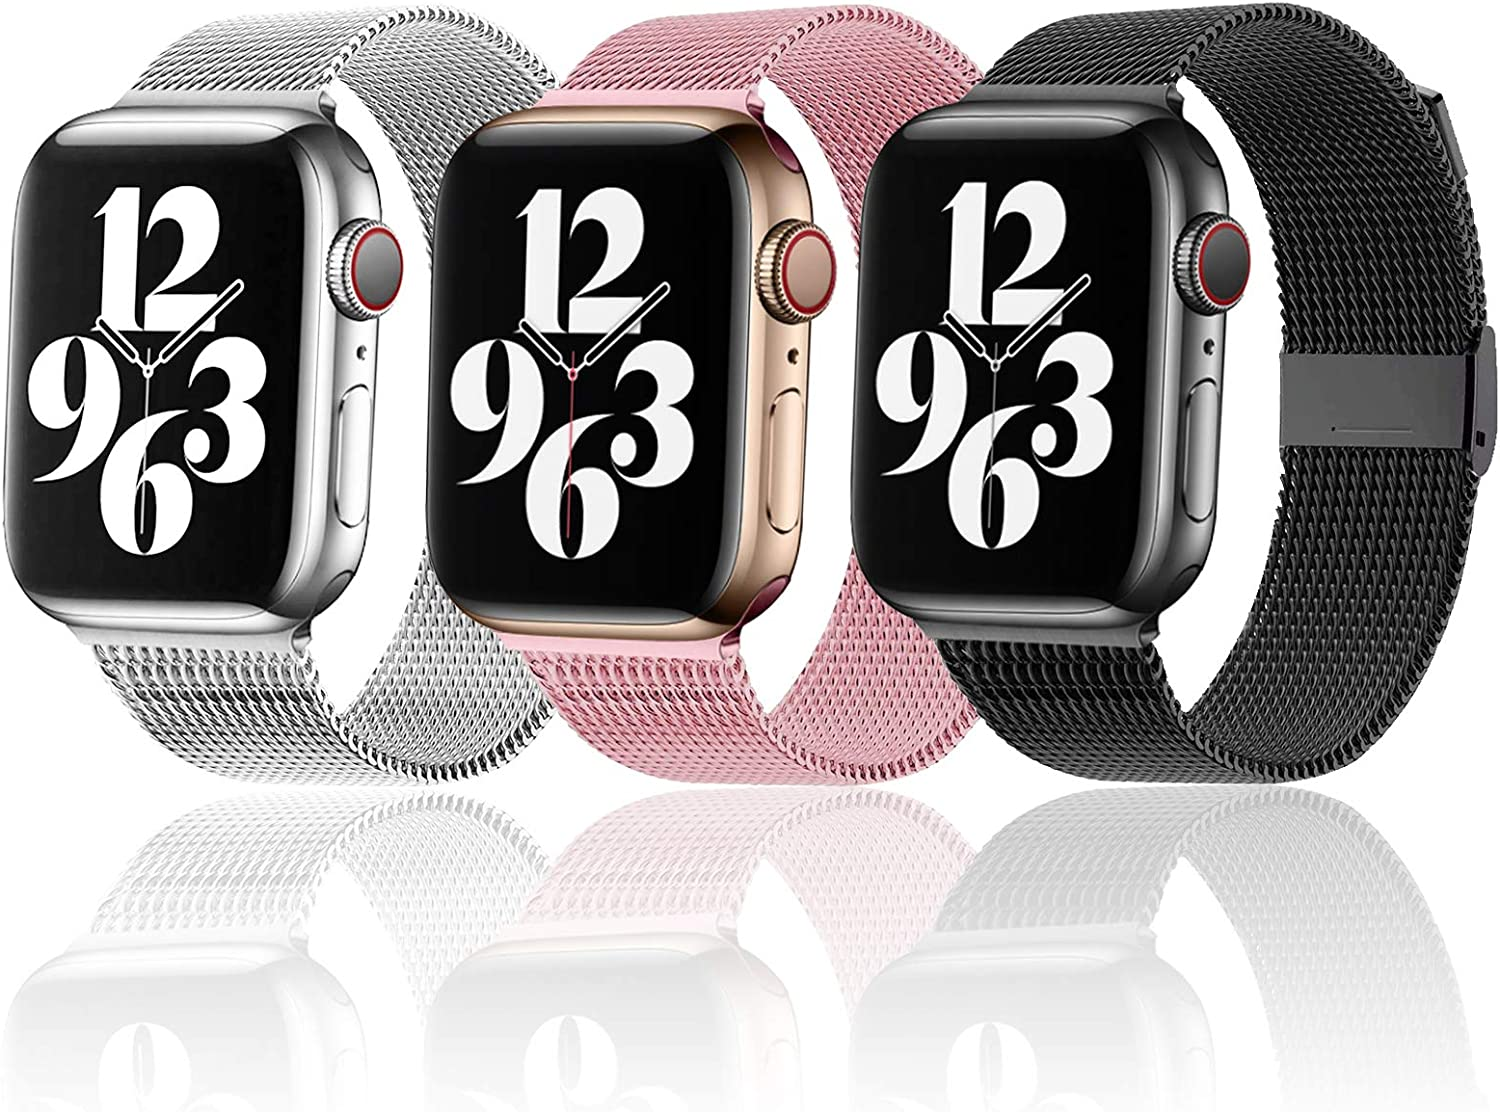 Magnetic iWatch Band Compatible for apple Watch 38mm 40mm 42 mm 44mm,Stainless Steel Mesh Loop metal Sport Wristband Compatible for iWatch Series 6/5/4/3/2/1/SE